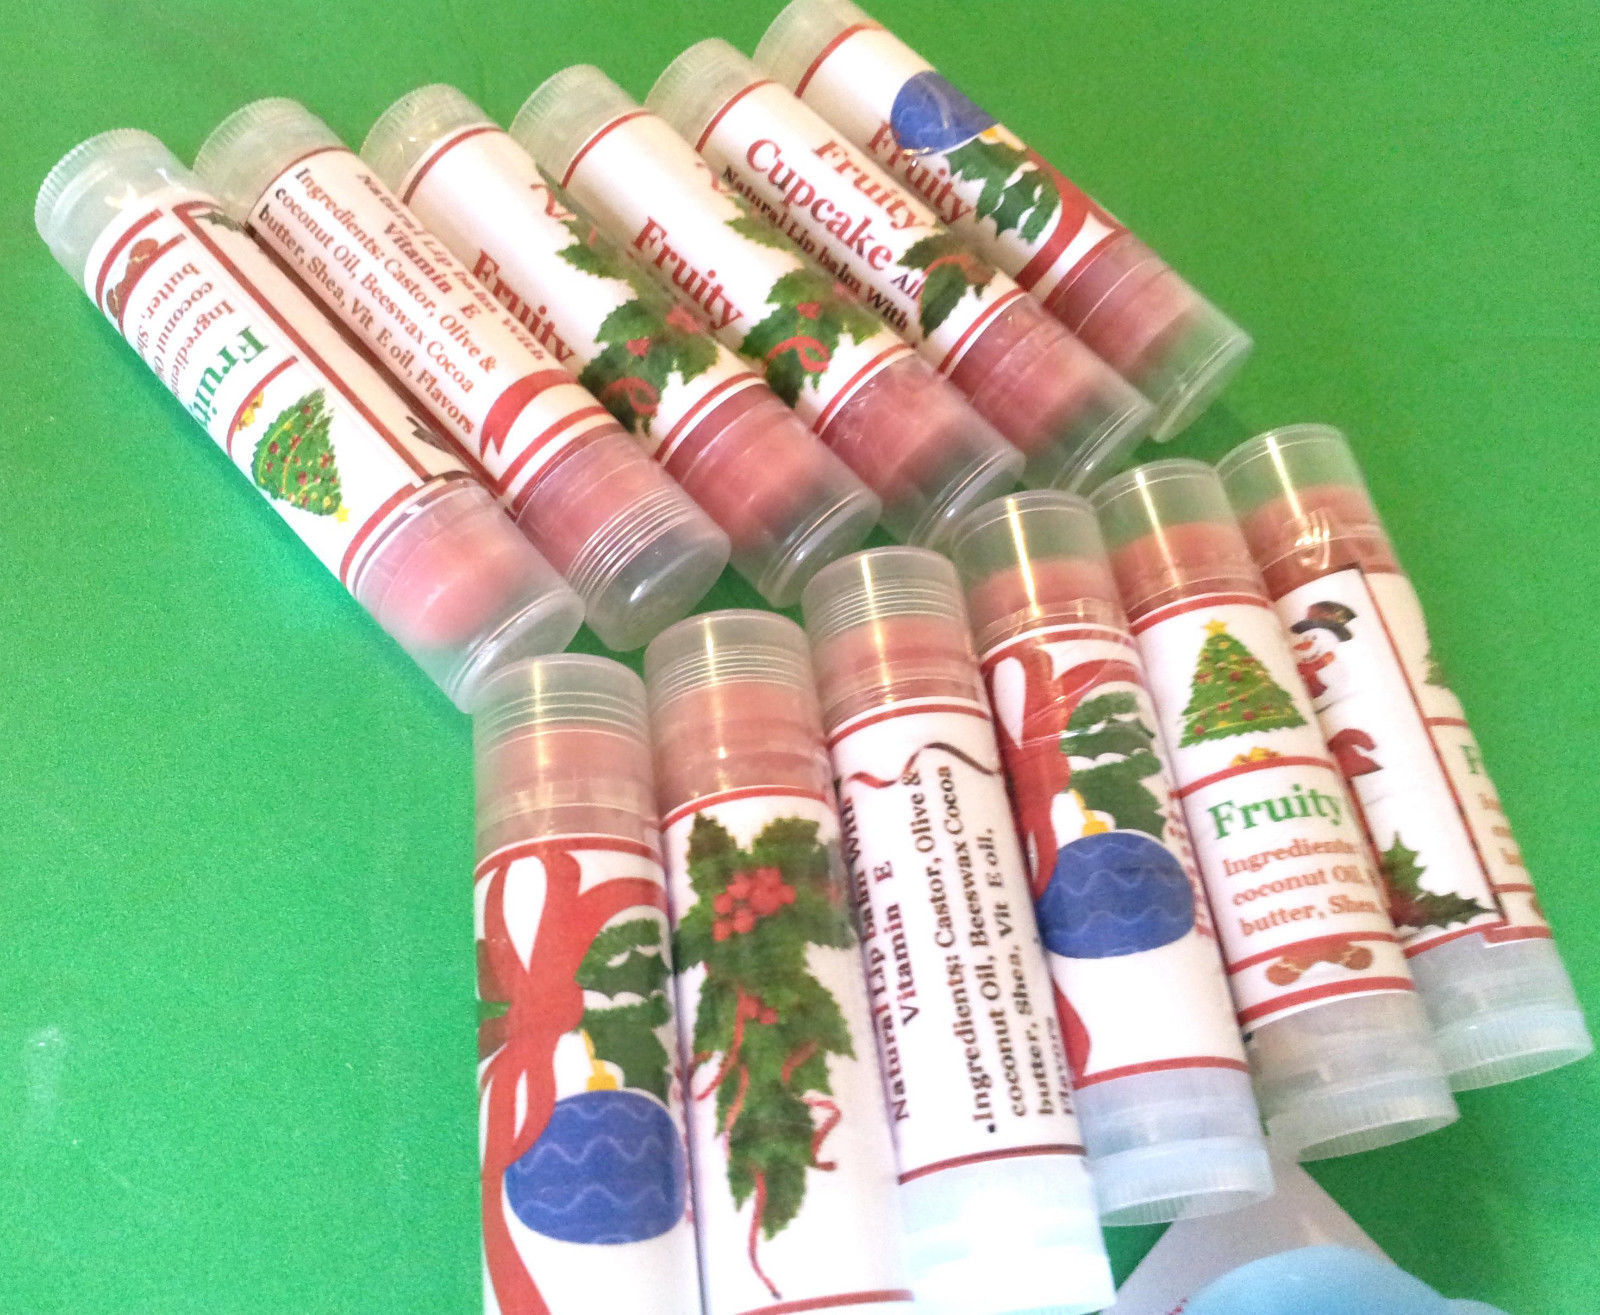 Homemade Natural Organic Tinted Lip Balm & Moisturizer -2Pcs, 5pcs, 10pcs